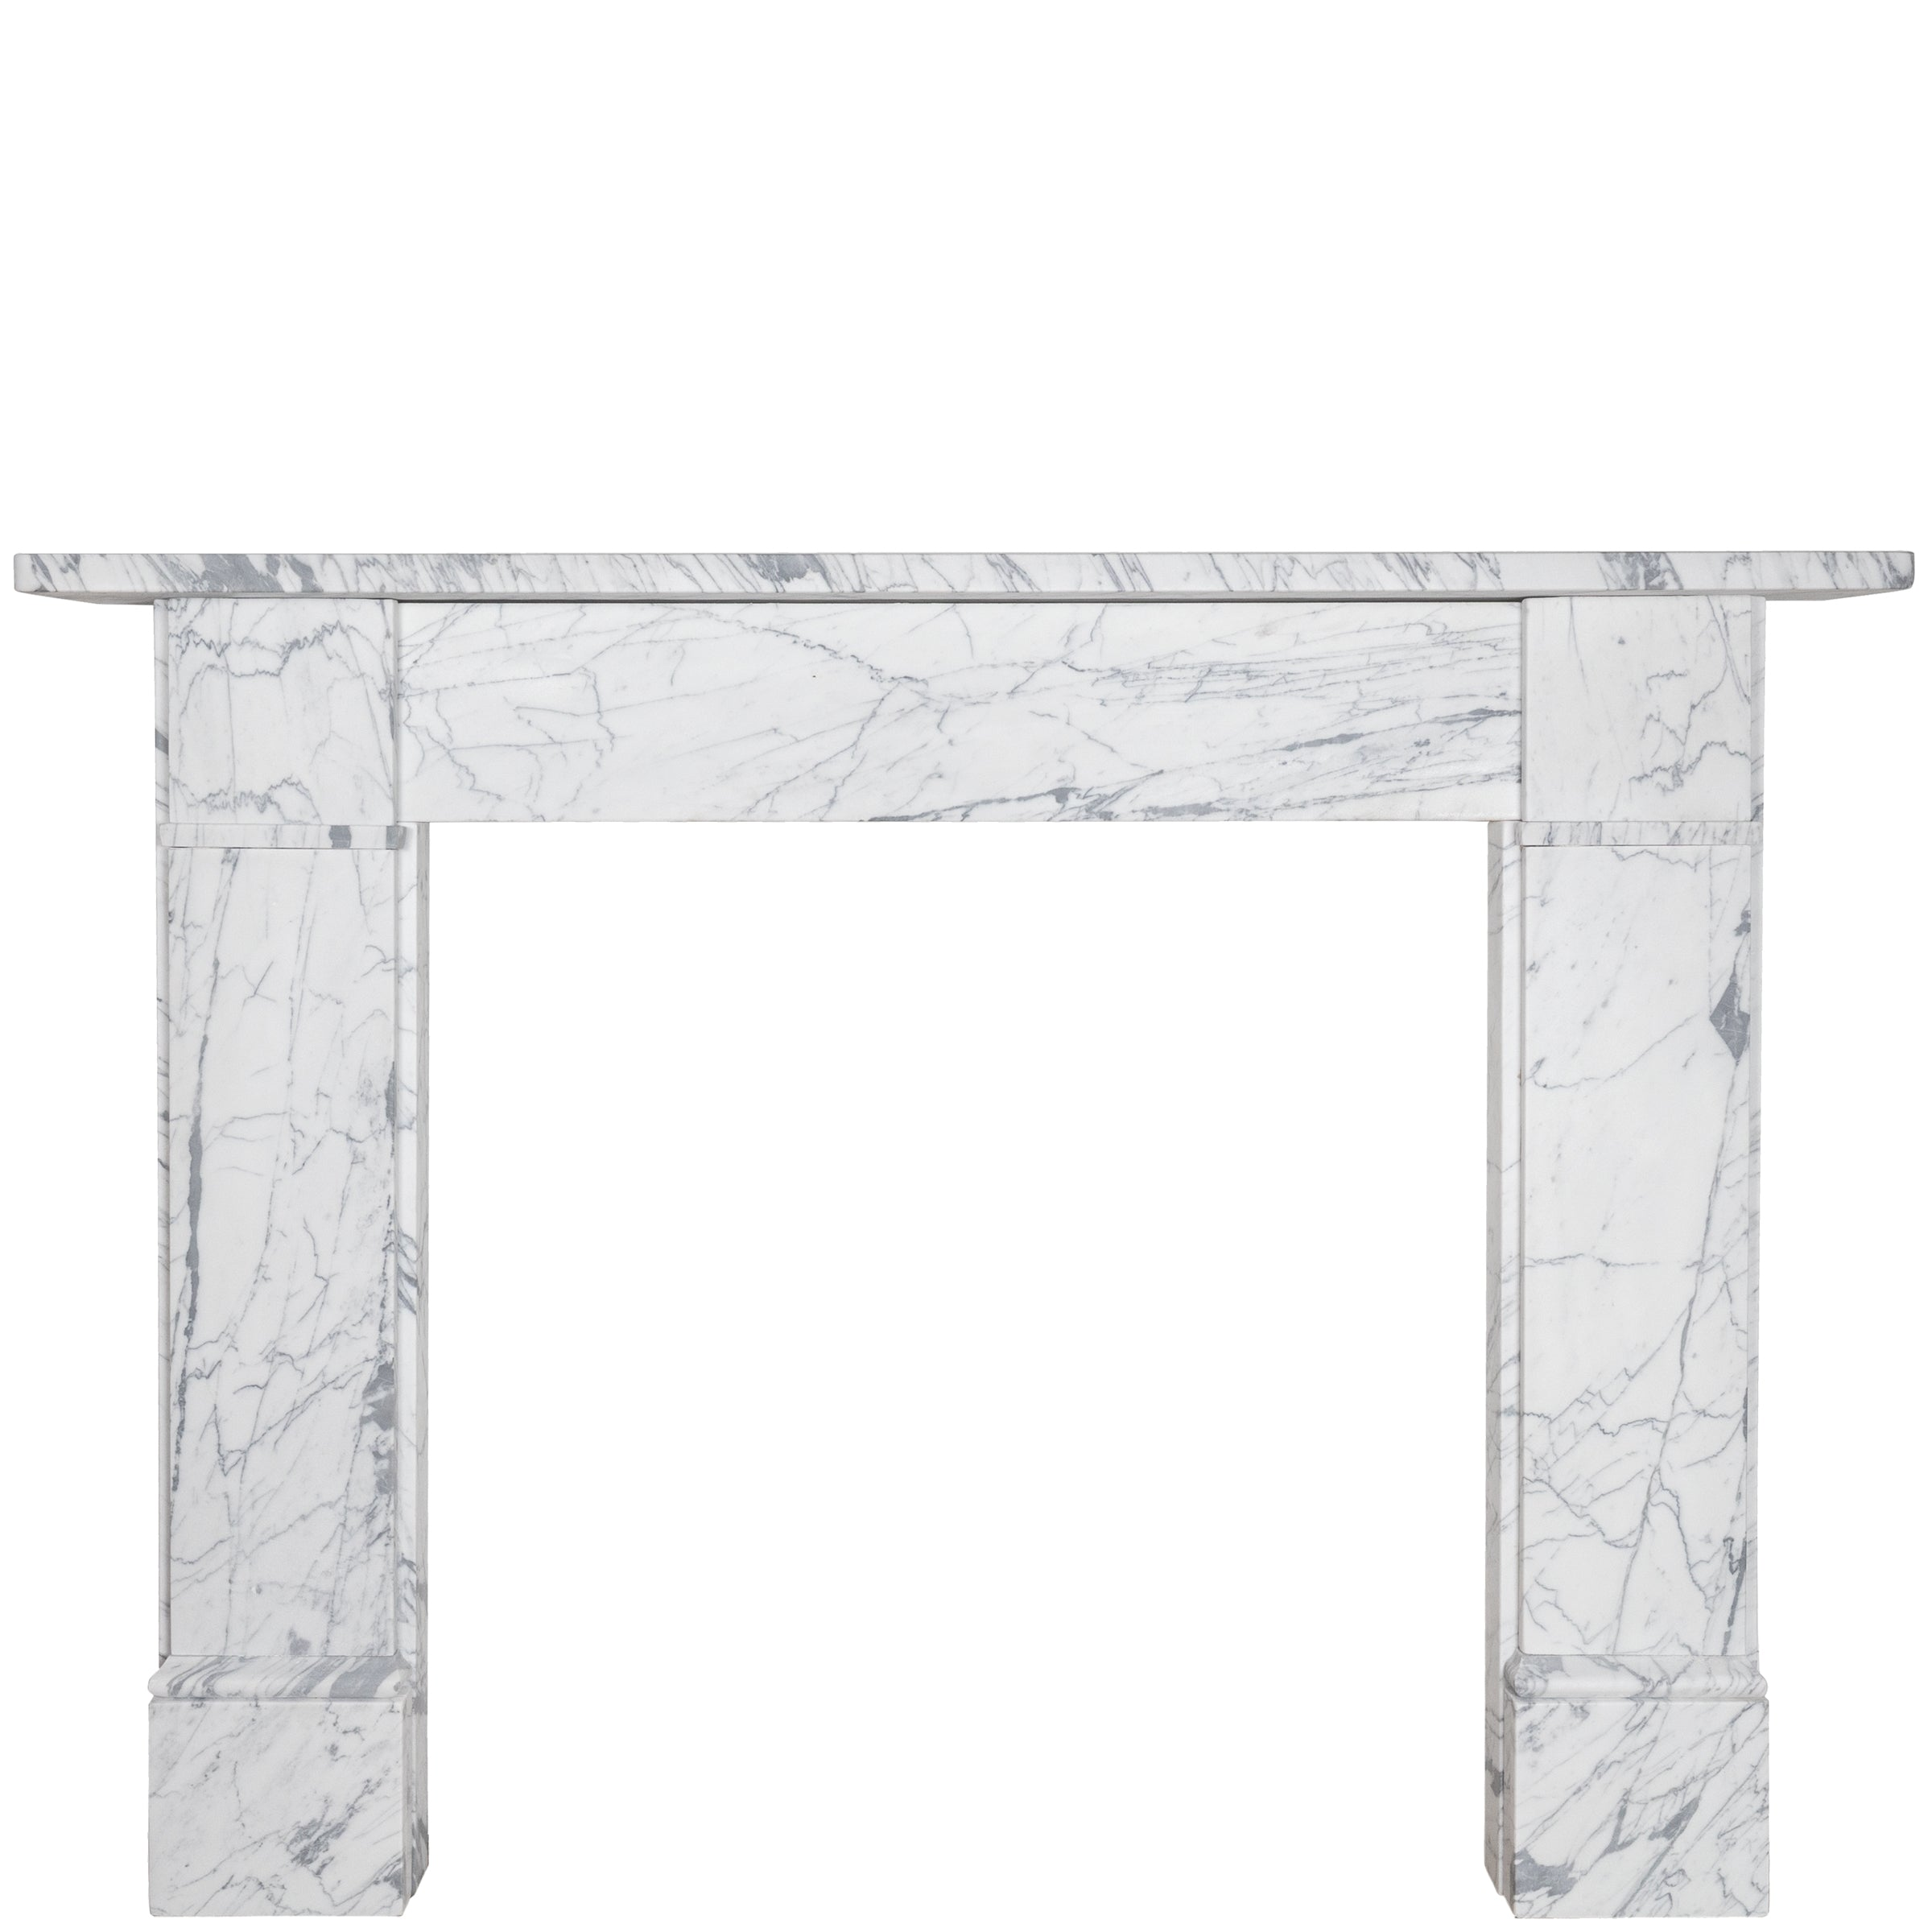 Georgian Style English Pencil Vein Marble Fireplace Surround The